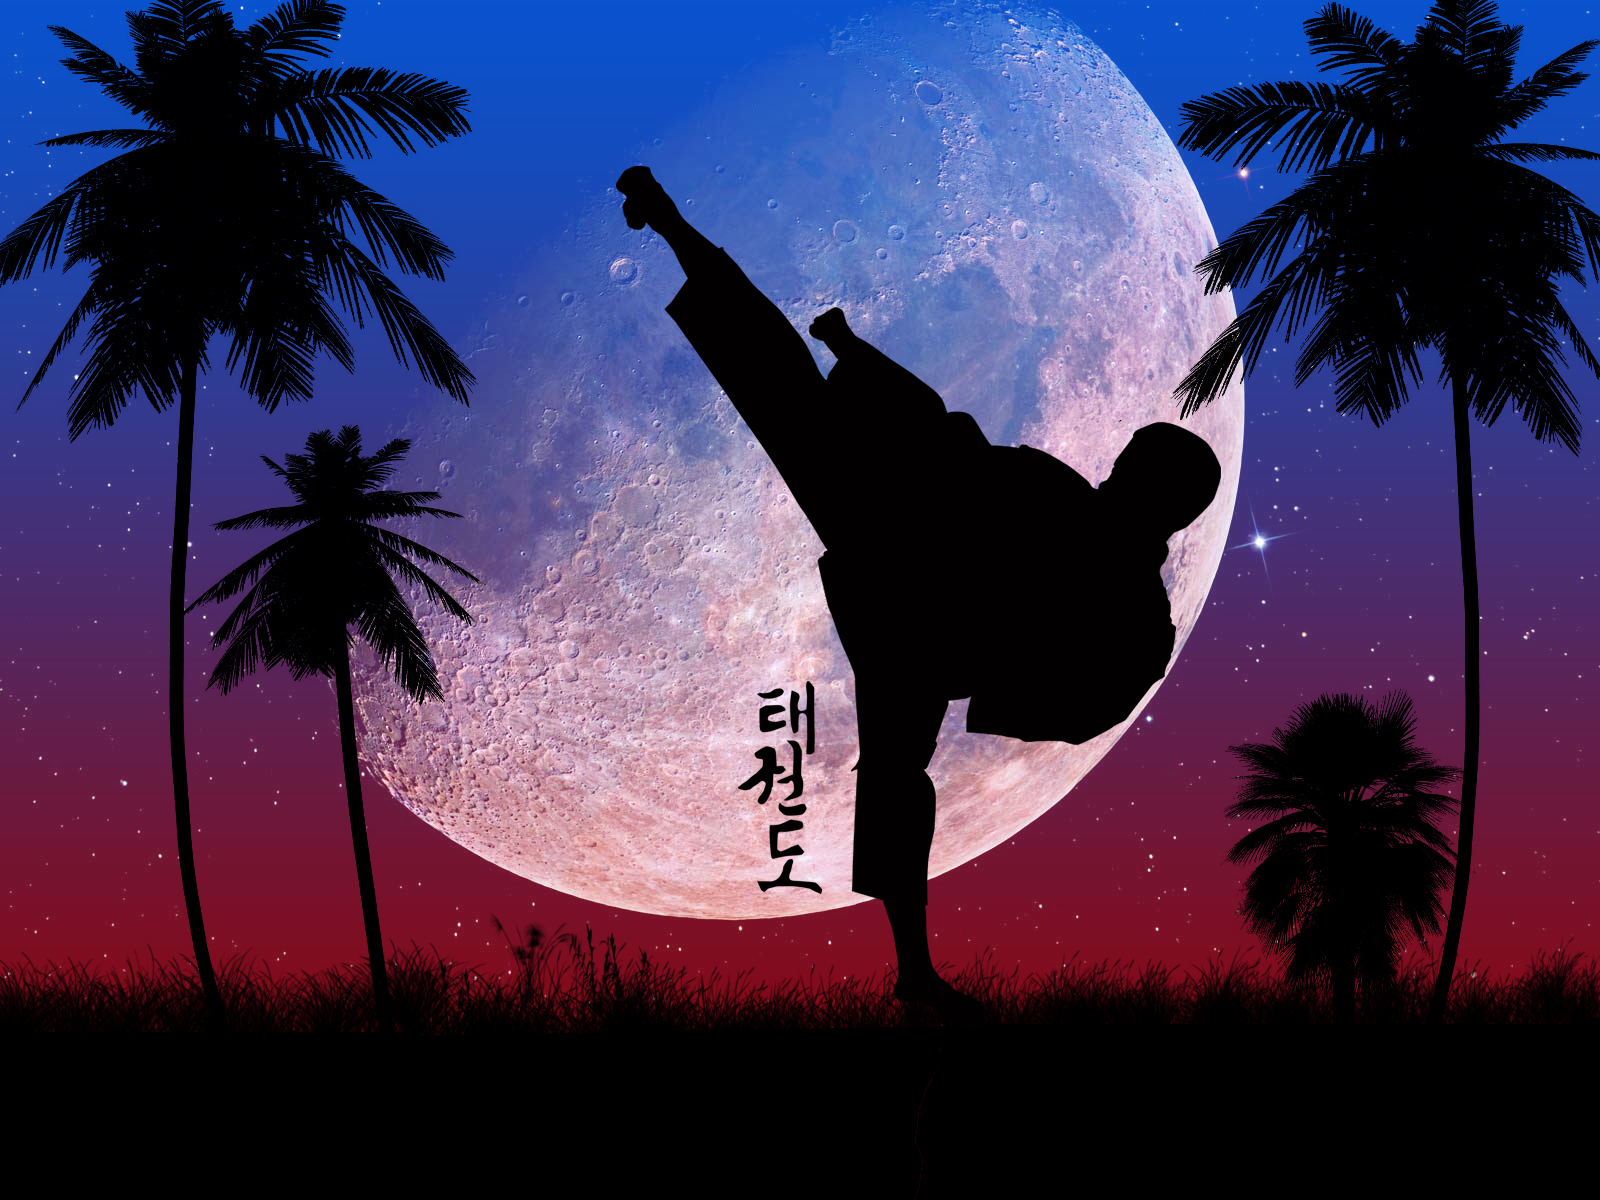 Taekwondo Itf Wallpaper 3d York All Stars Taekwondo 187 Taekwon Do By Belafon